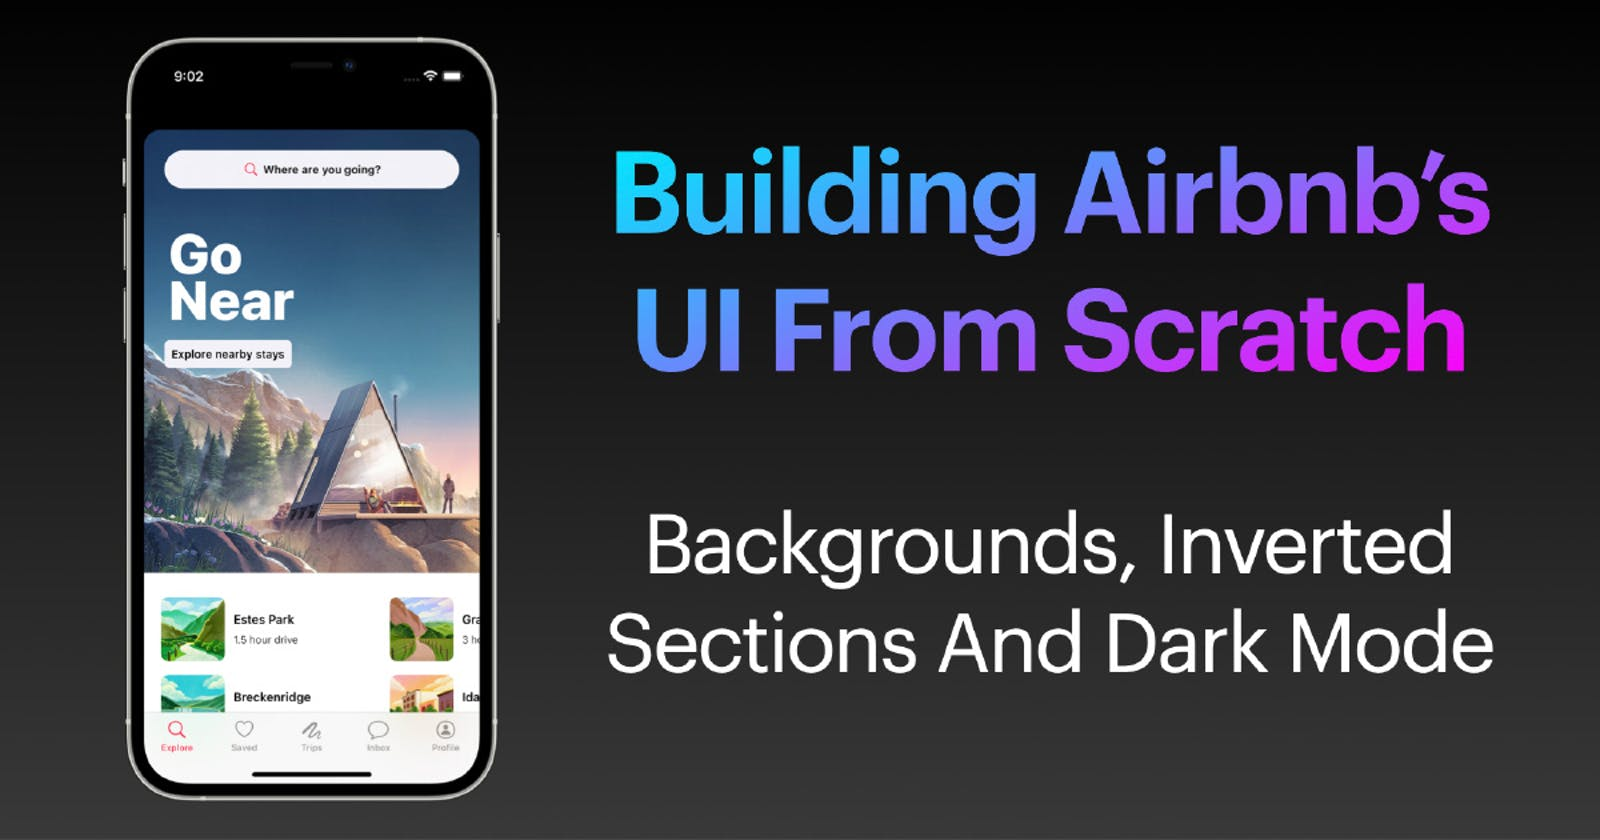 Building Airbnb's UI From Scratch - Part 4